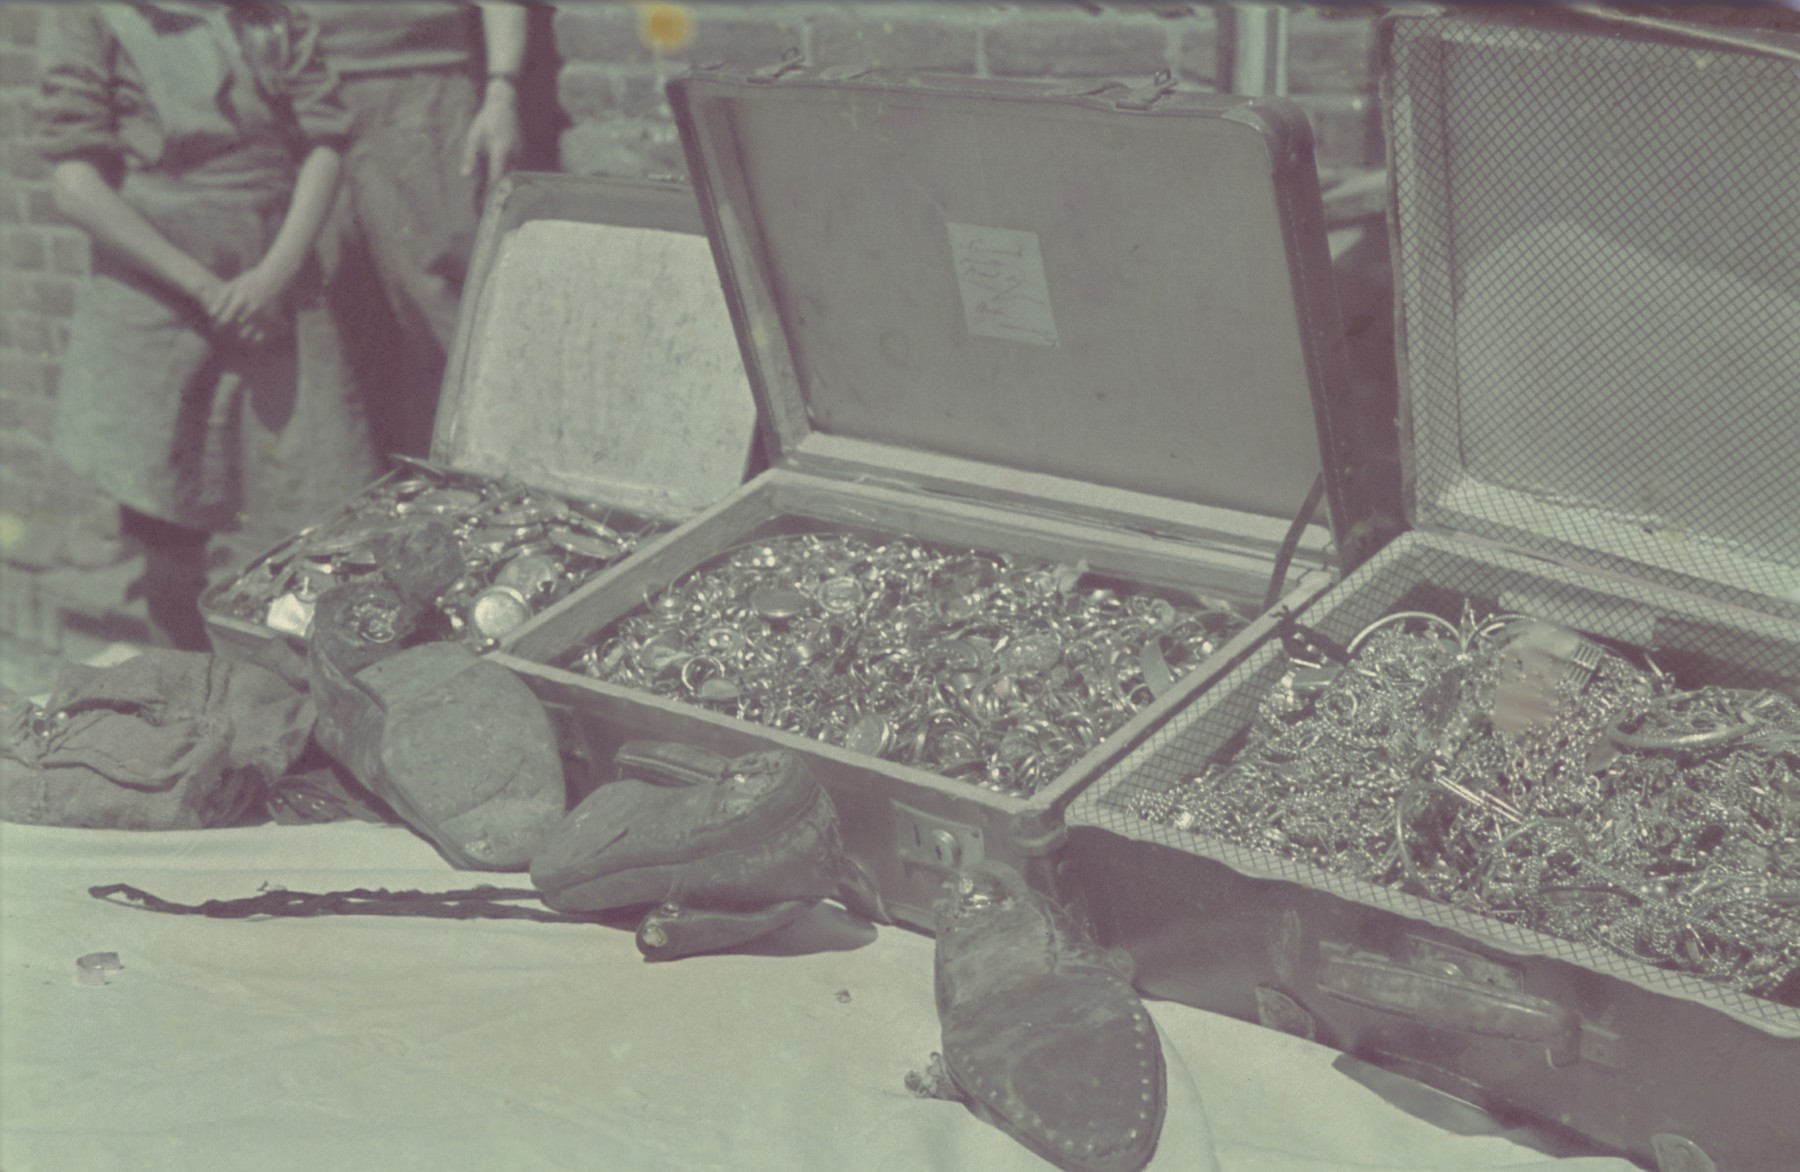 """A display of confiscated valuables, some buried in the heels of shoes, collected and sorted in the Pabianice labor camp/storage facility.  Original German caption: """"Pabianice, Versteckte Werte"""" (hidden valuables), #31."""